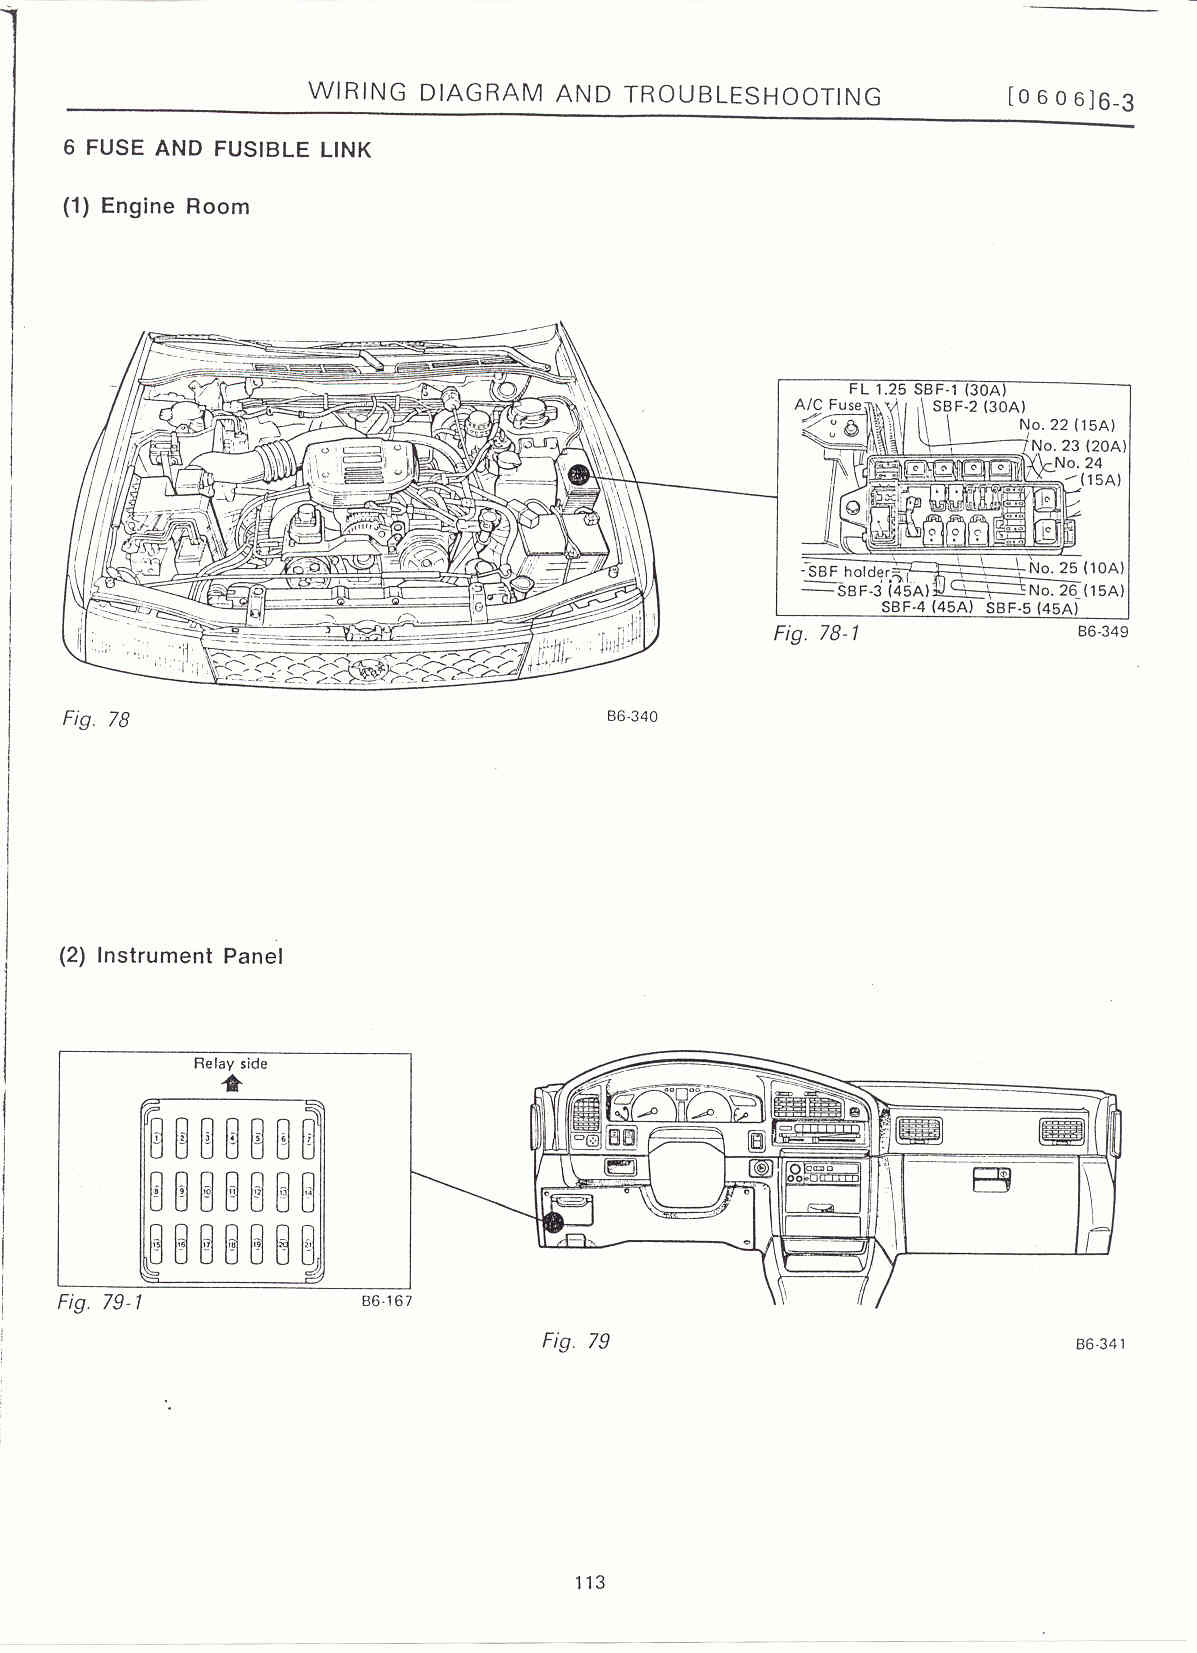 2000 subaru outback engine diagram house wiring diagrams australia fusible link fuse box 41